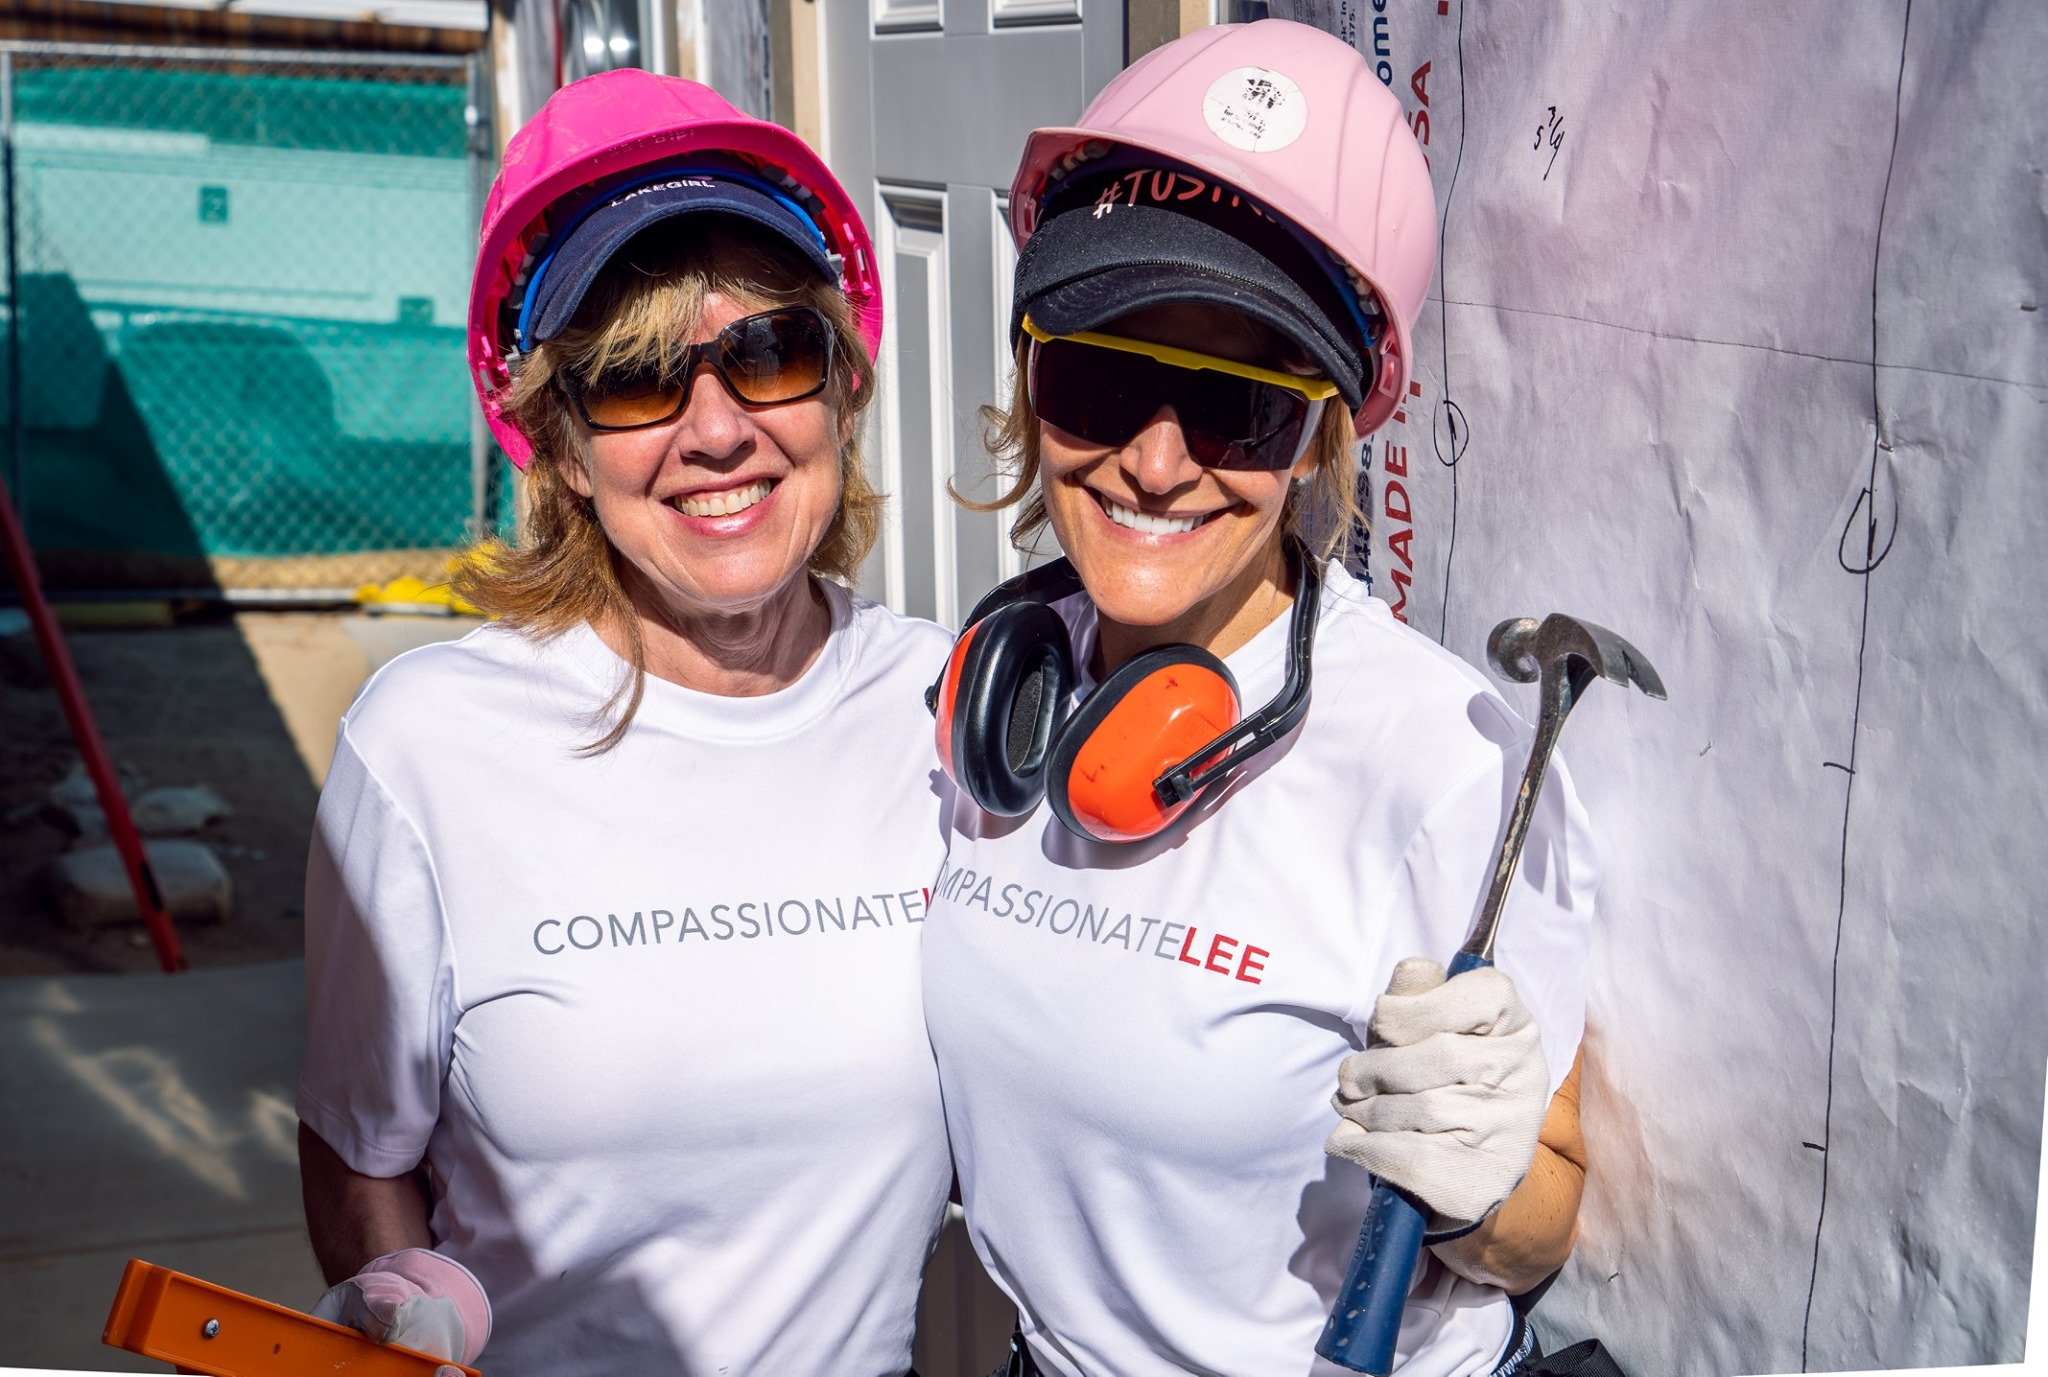 CompassionateLEE + Habitat for Humanity